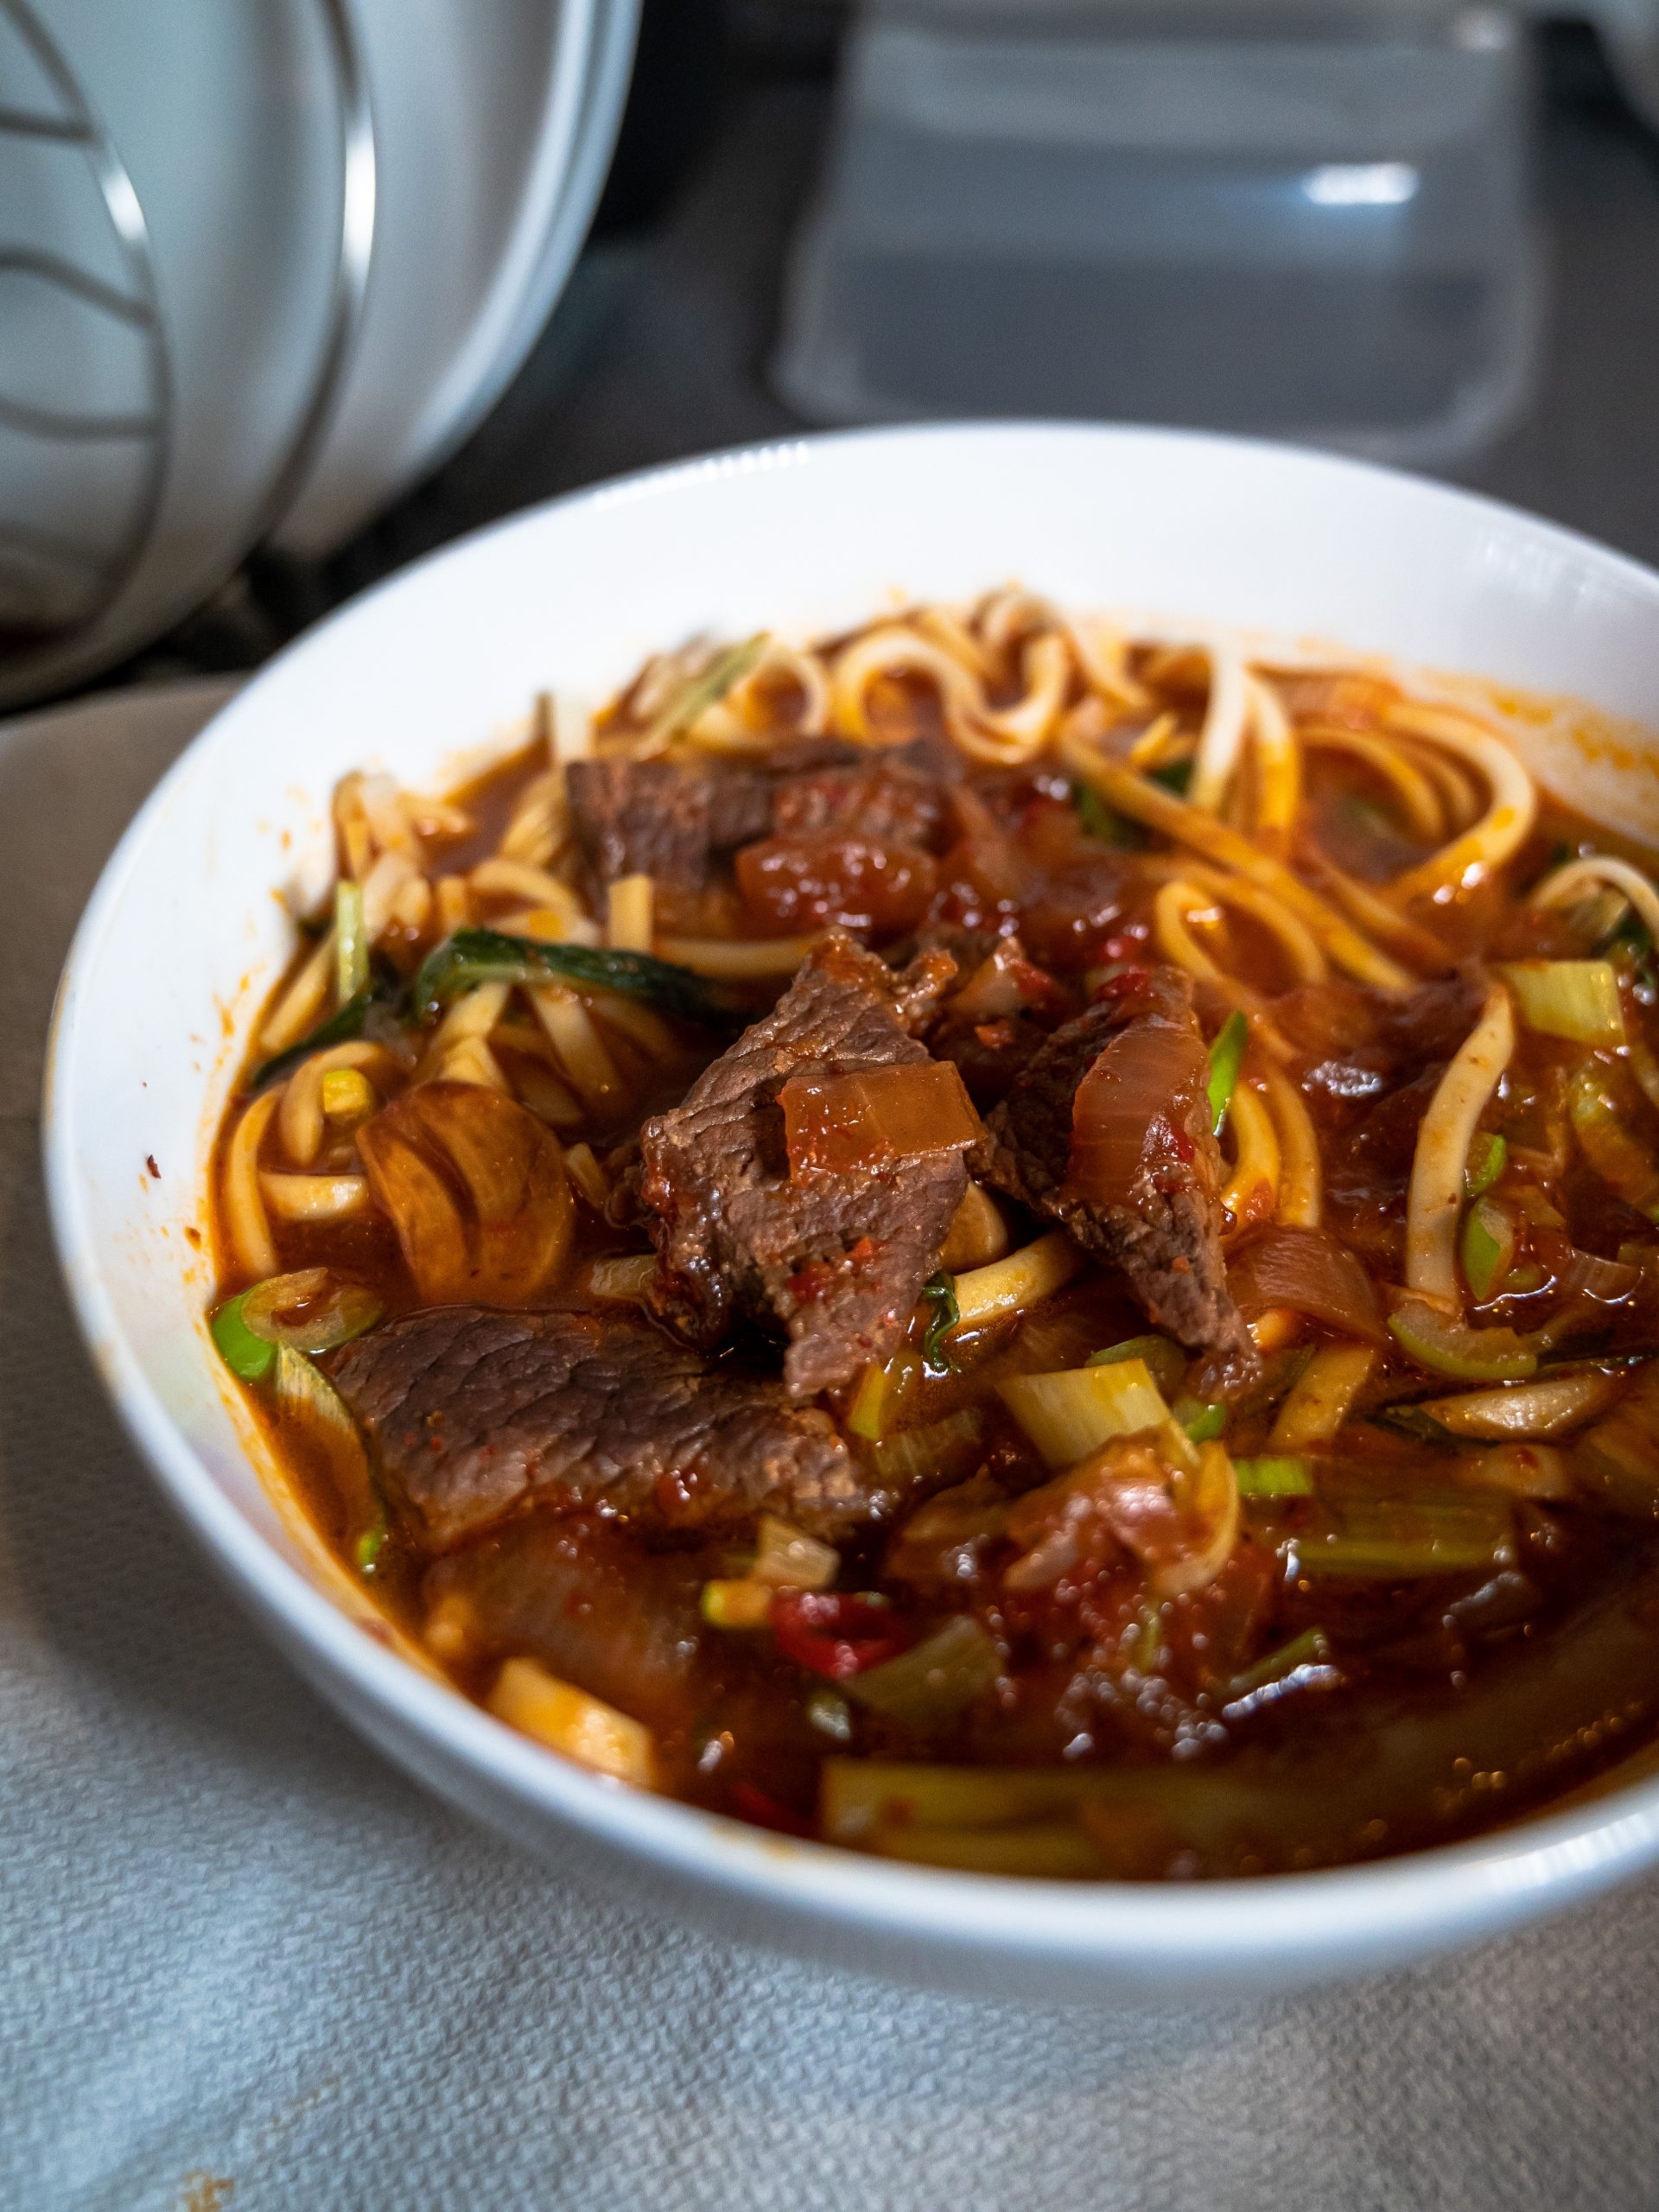 Red Braised Beef Noodle Soup 紅燒牛肉麵 (Modified Version)